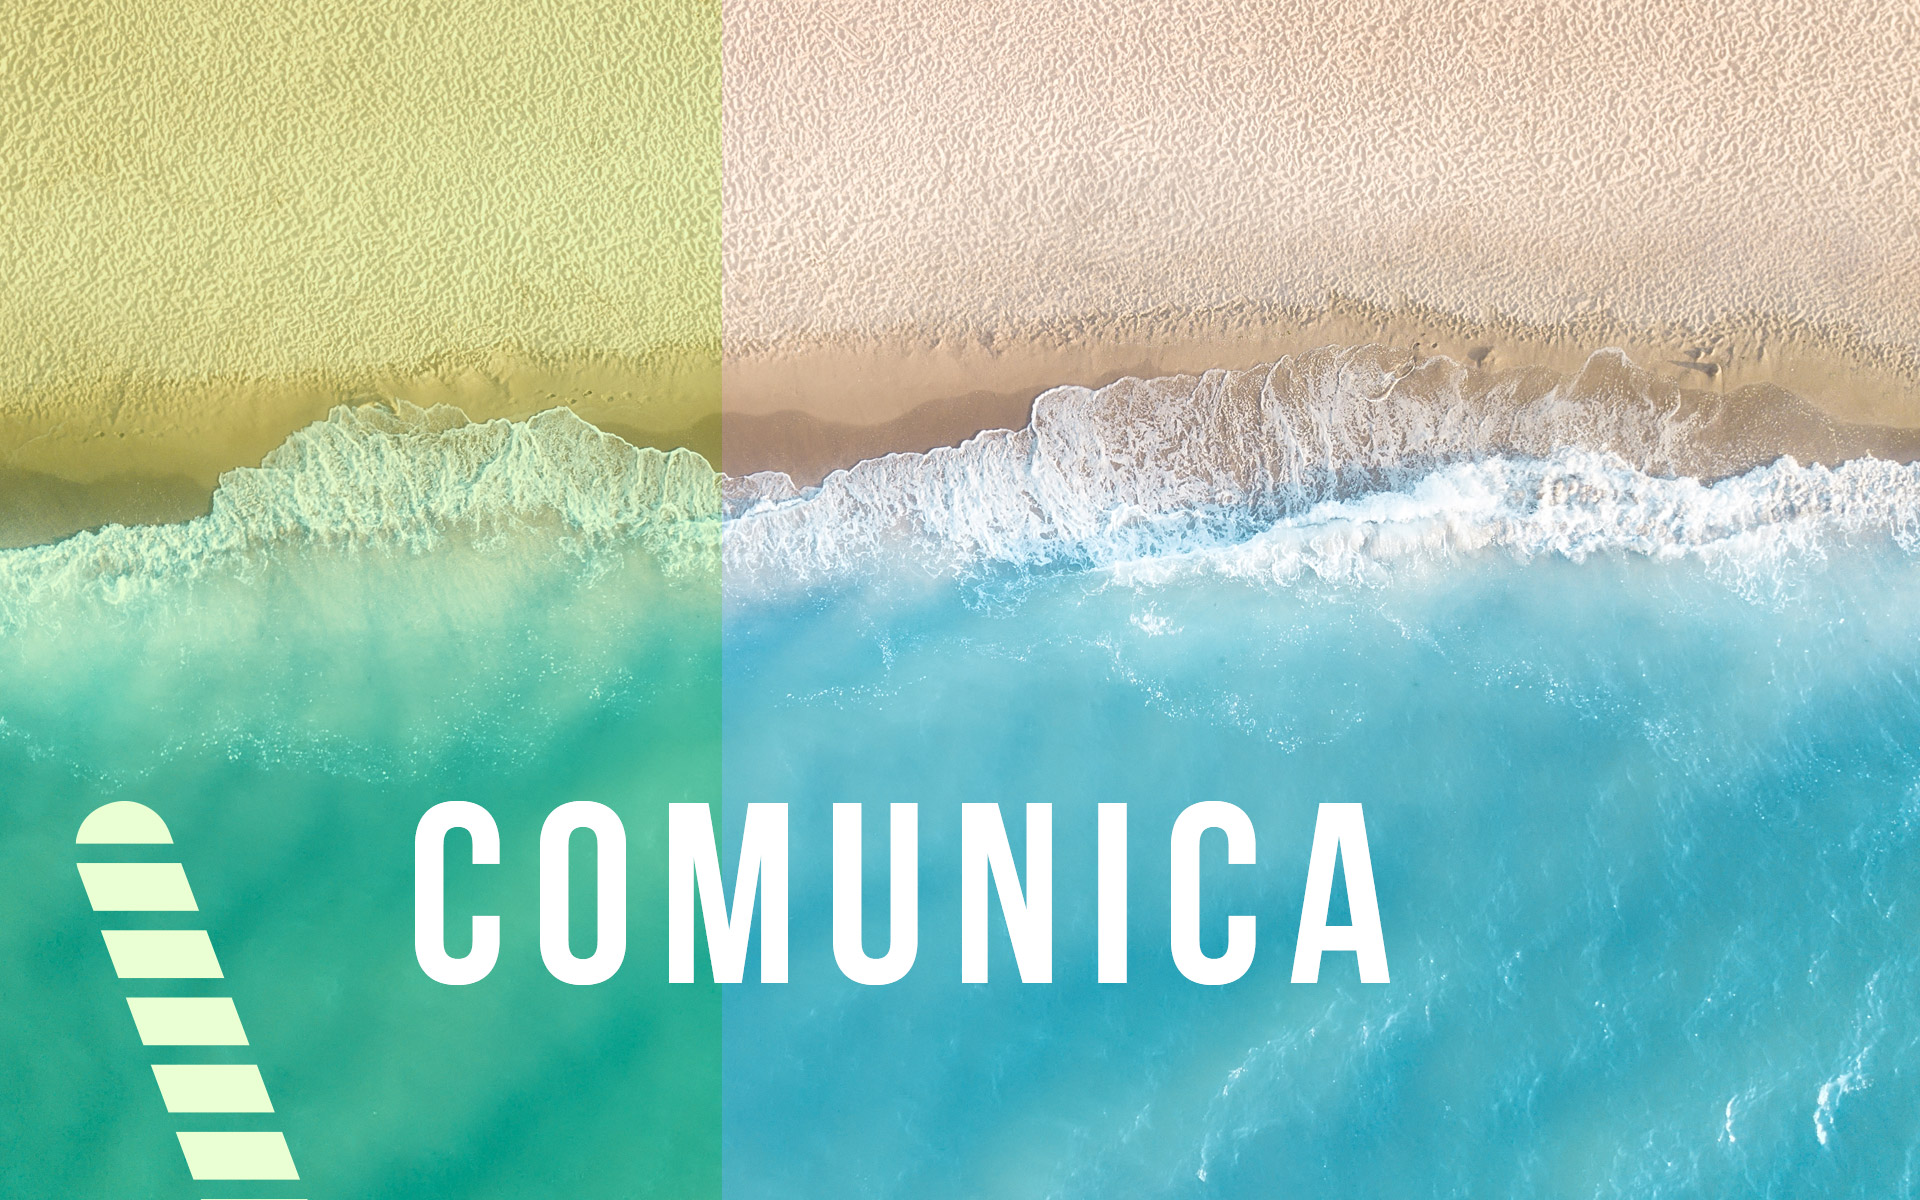 comunica-witrade-commuication